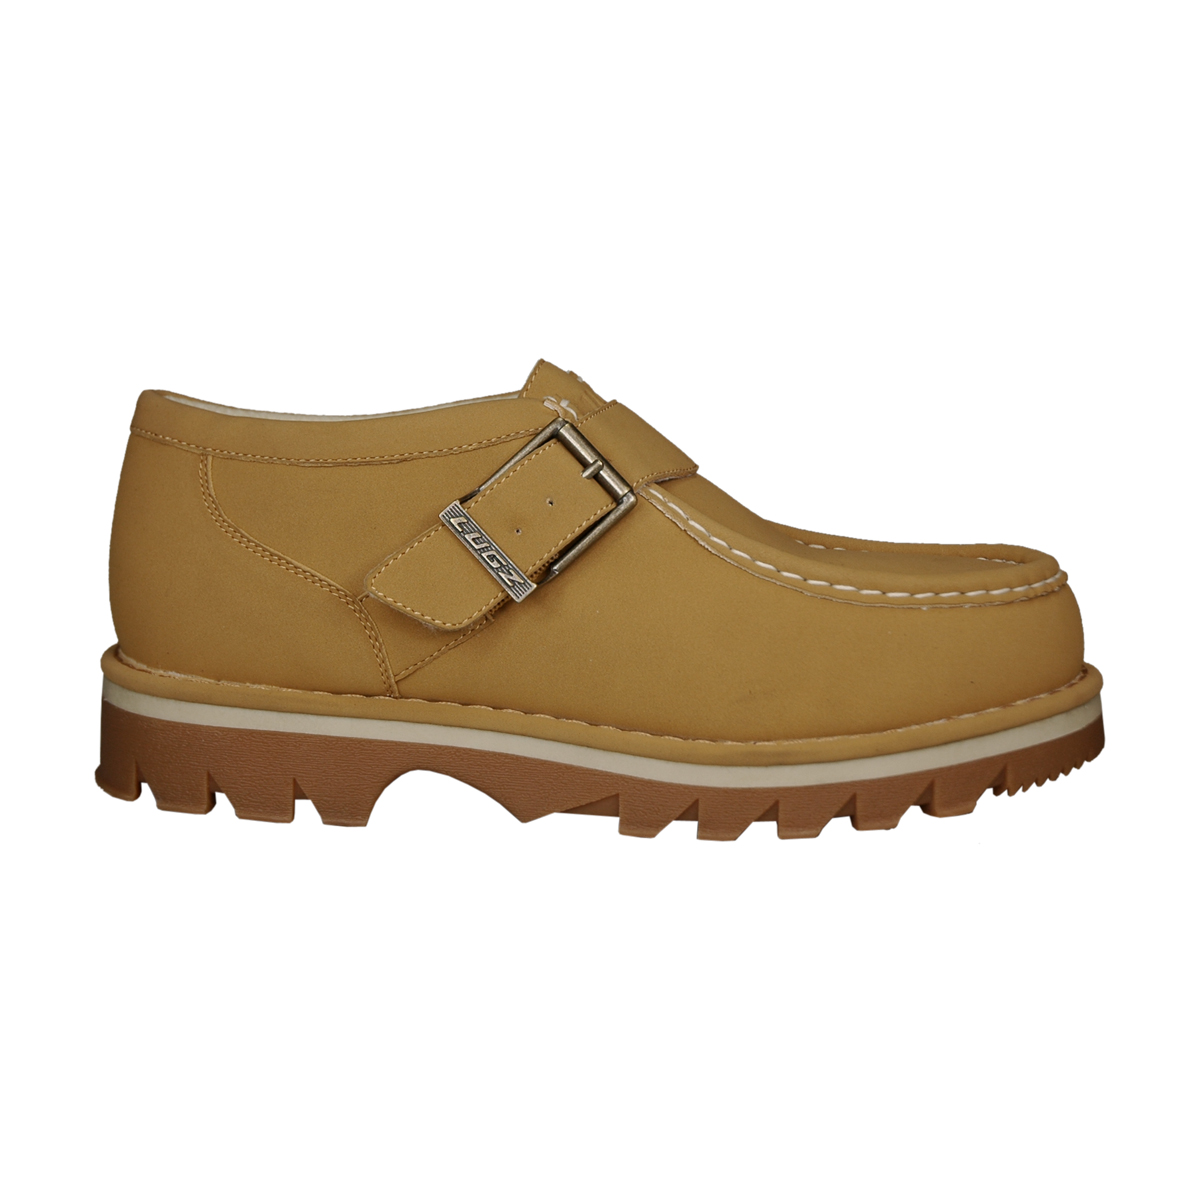 Gum Fashion Lugz Mantle Mid Charcoal Women's Boot Please note that all submitted comments will be reviewed by the BJUI Web Team before they are considered for publishing on the site. Comments may take up to 48 hours to go live.